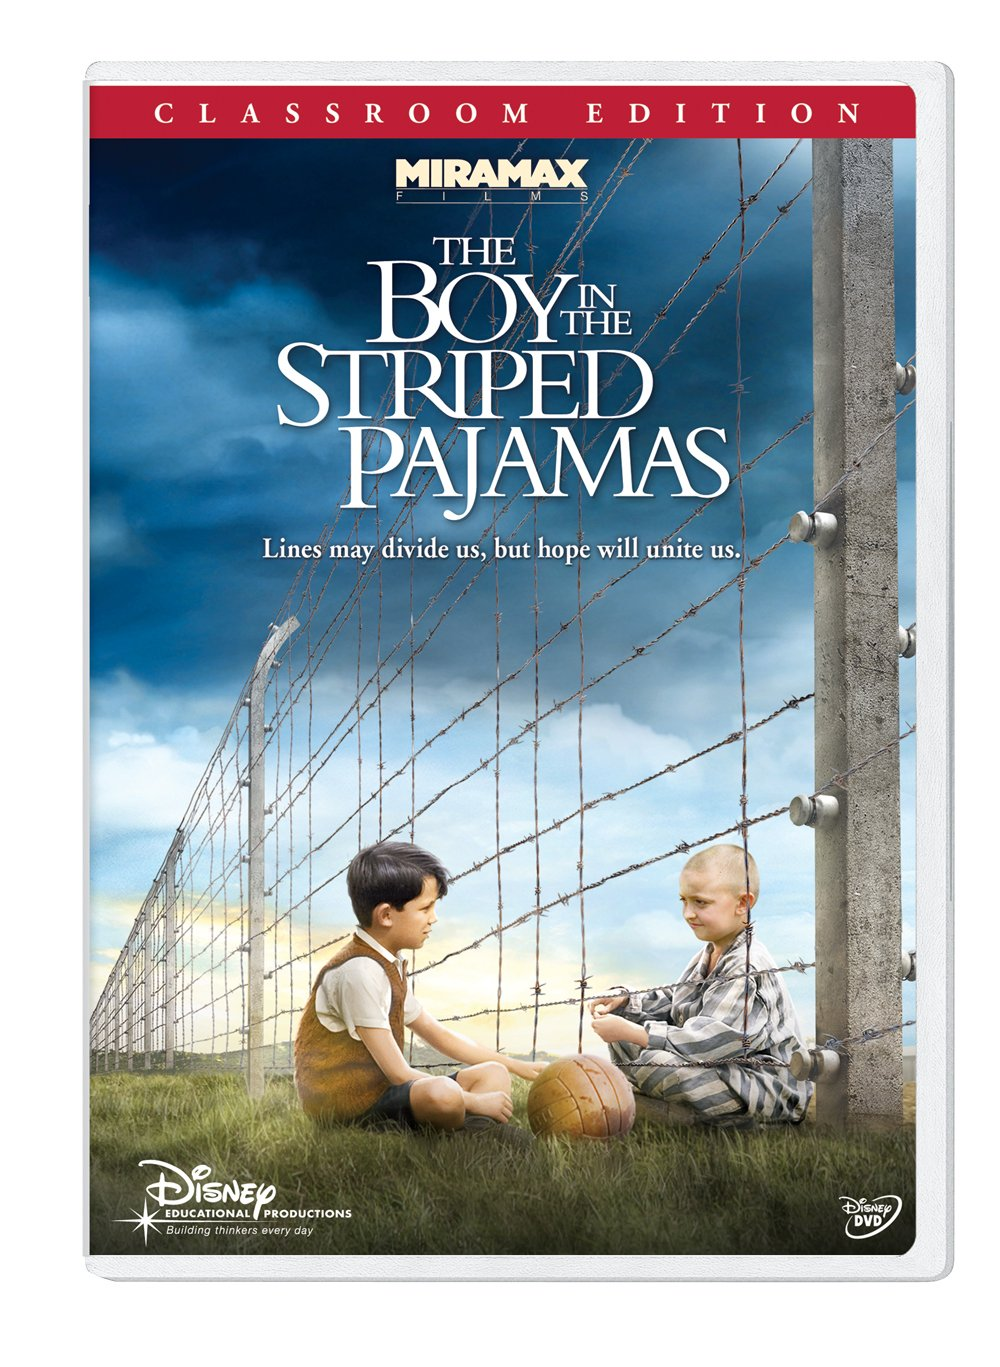 com the boy in the striped pajamas classroom edition com the boy in the striped pajamas classroom edition interactive dvd sheila hancock david thewlis david hayman jim norton vera farmiga